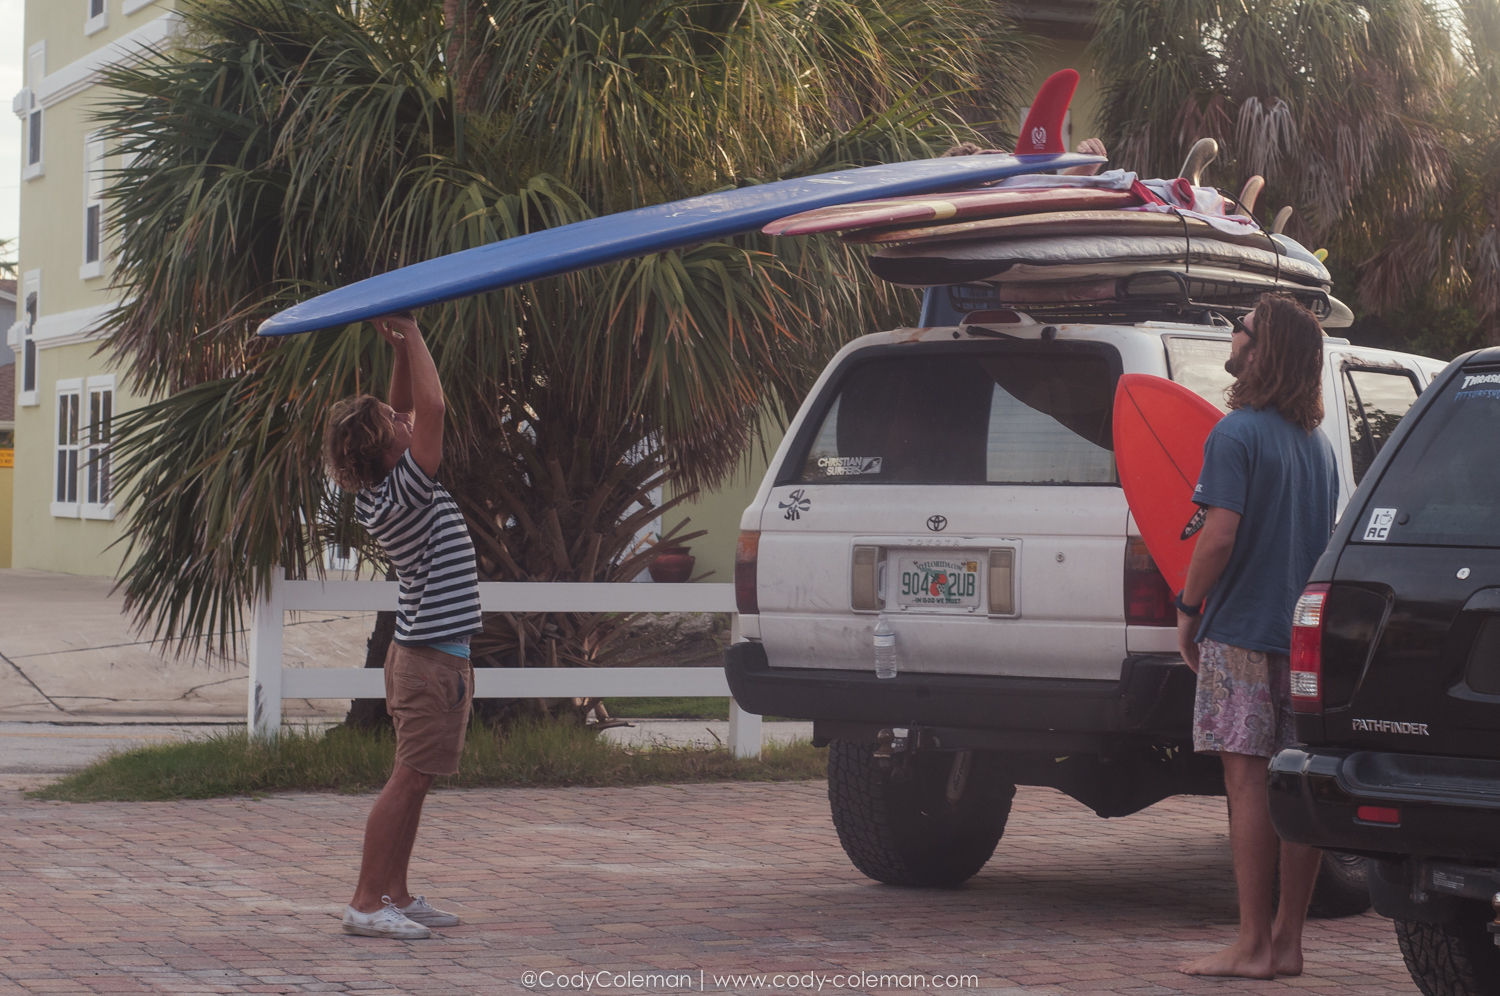 Left is contest winner Saxon Wilson ( @saxon_wilson ) just after sunrise stacking boards on Conklin's truck to drive on the beach.